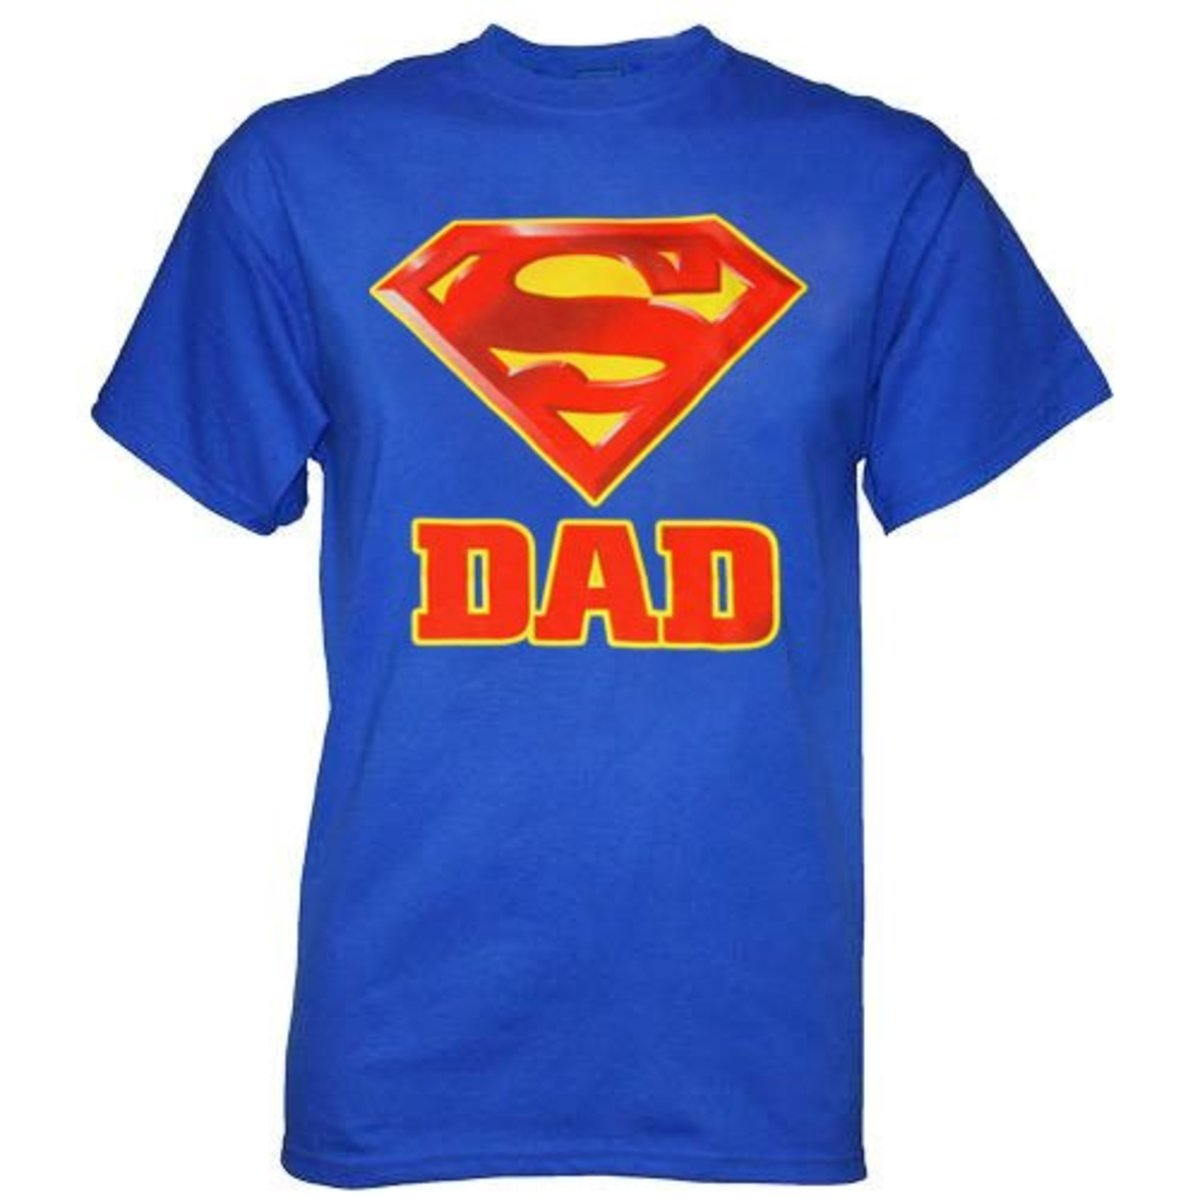 Superman Logo for Dad on a T Shirt